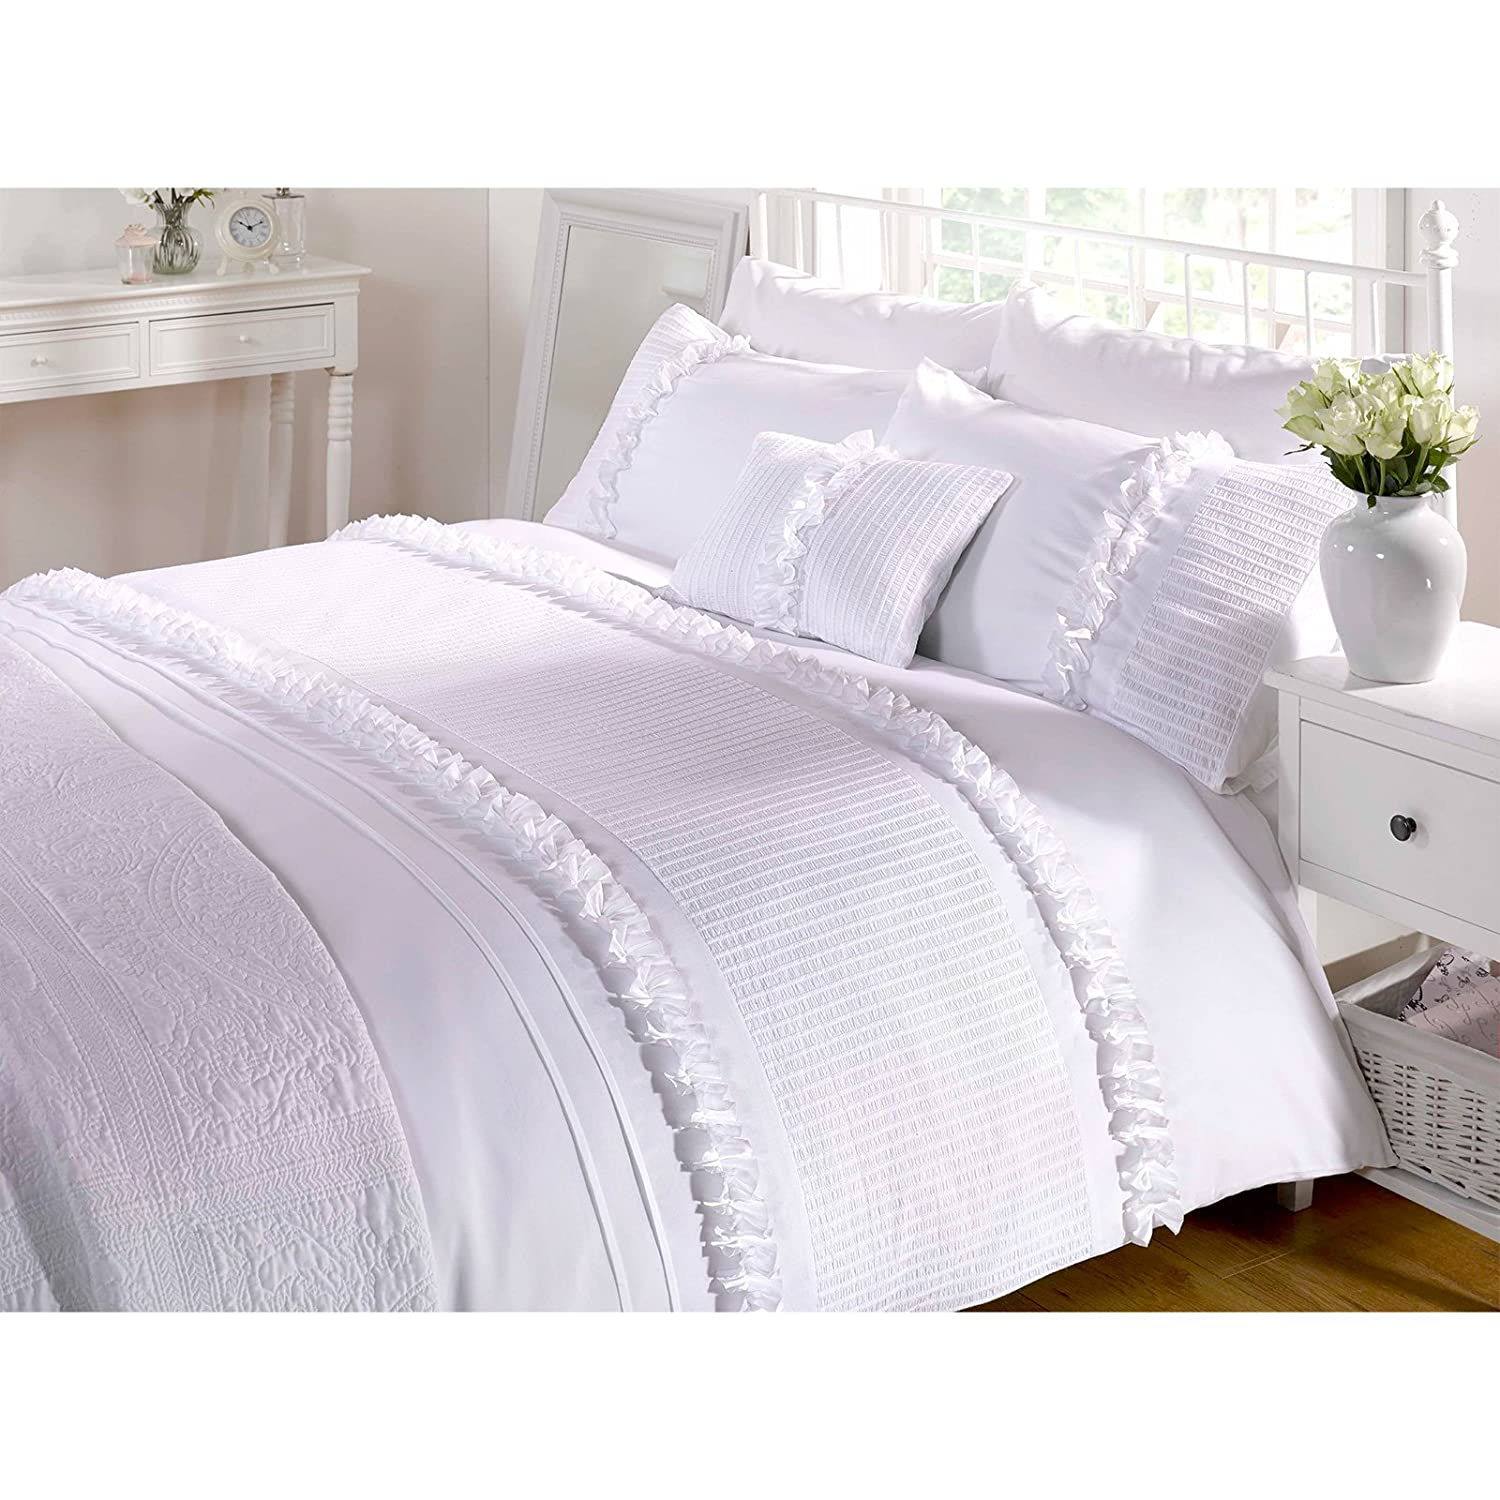 bedding ruffle bed set white sets lace itm cover girls skirt princess duvet